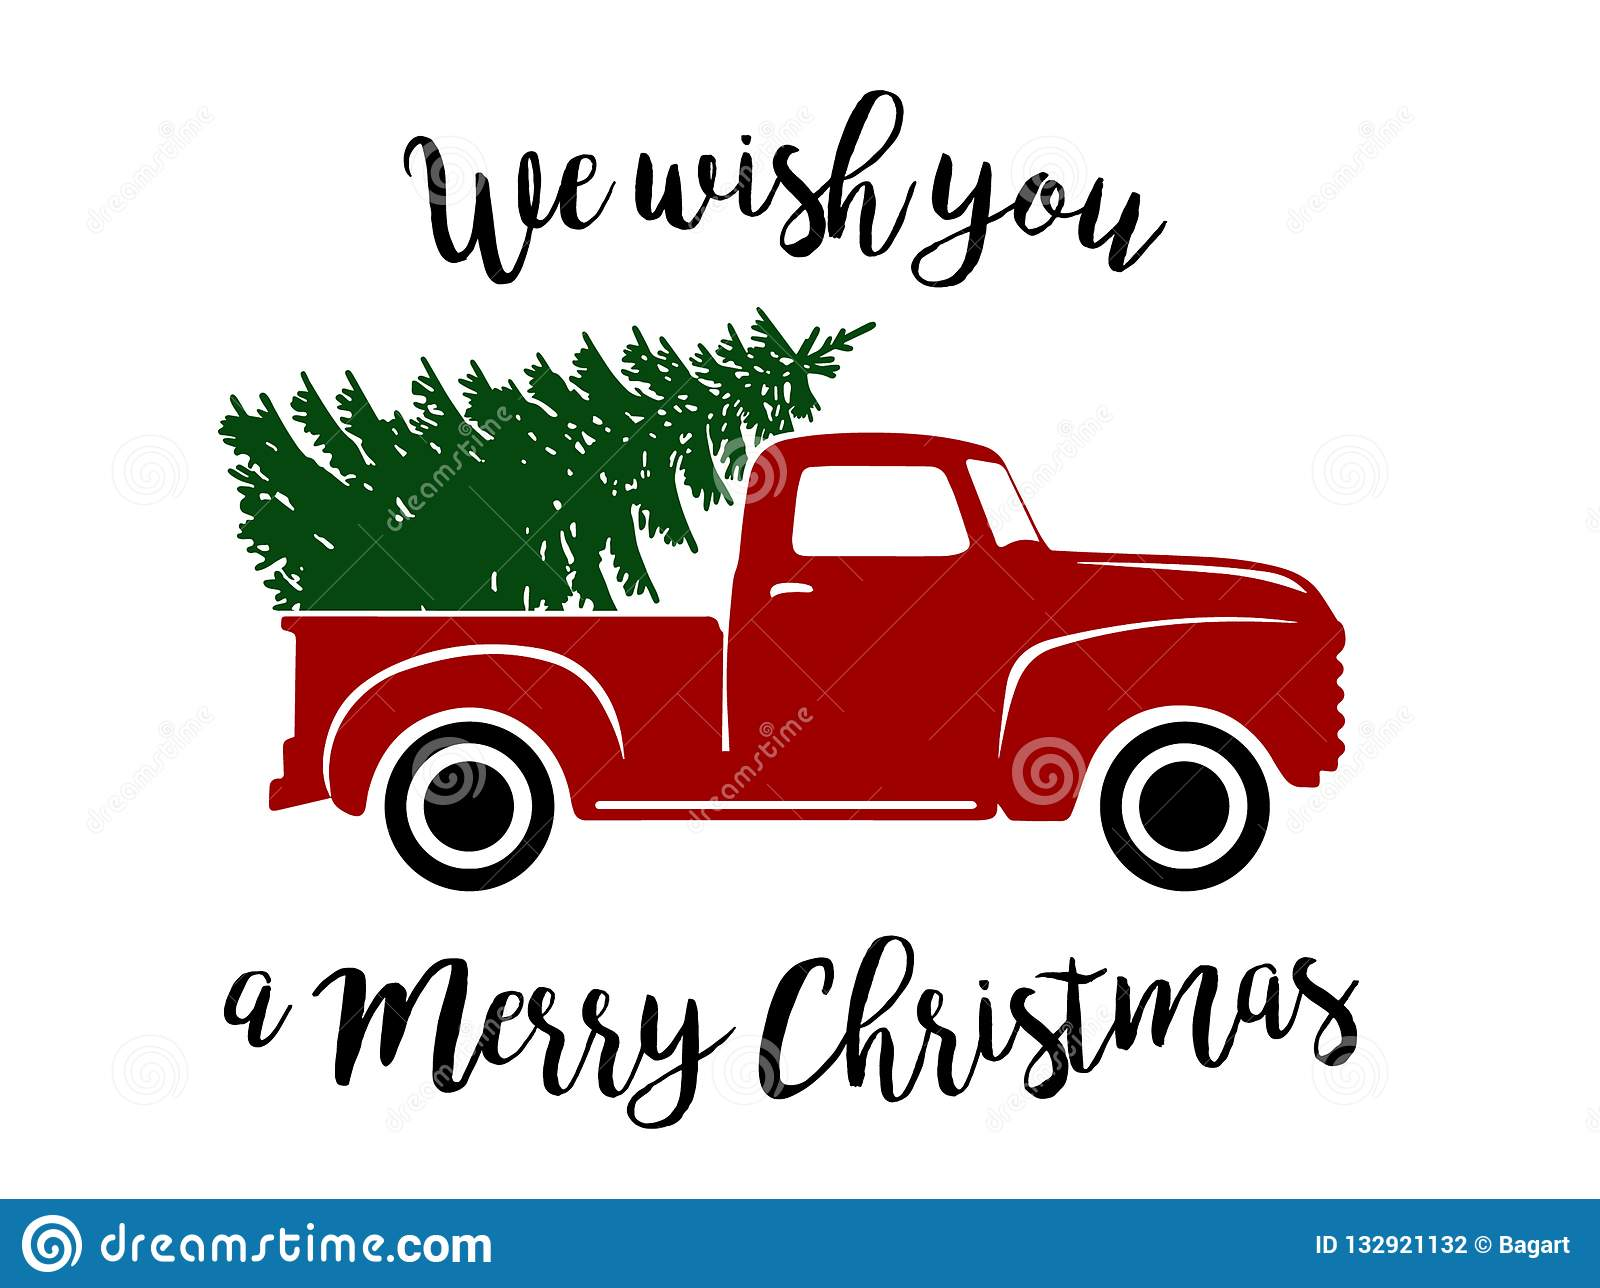 Old Christmas Truck stock vector. Illustration of flowing ...